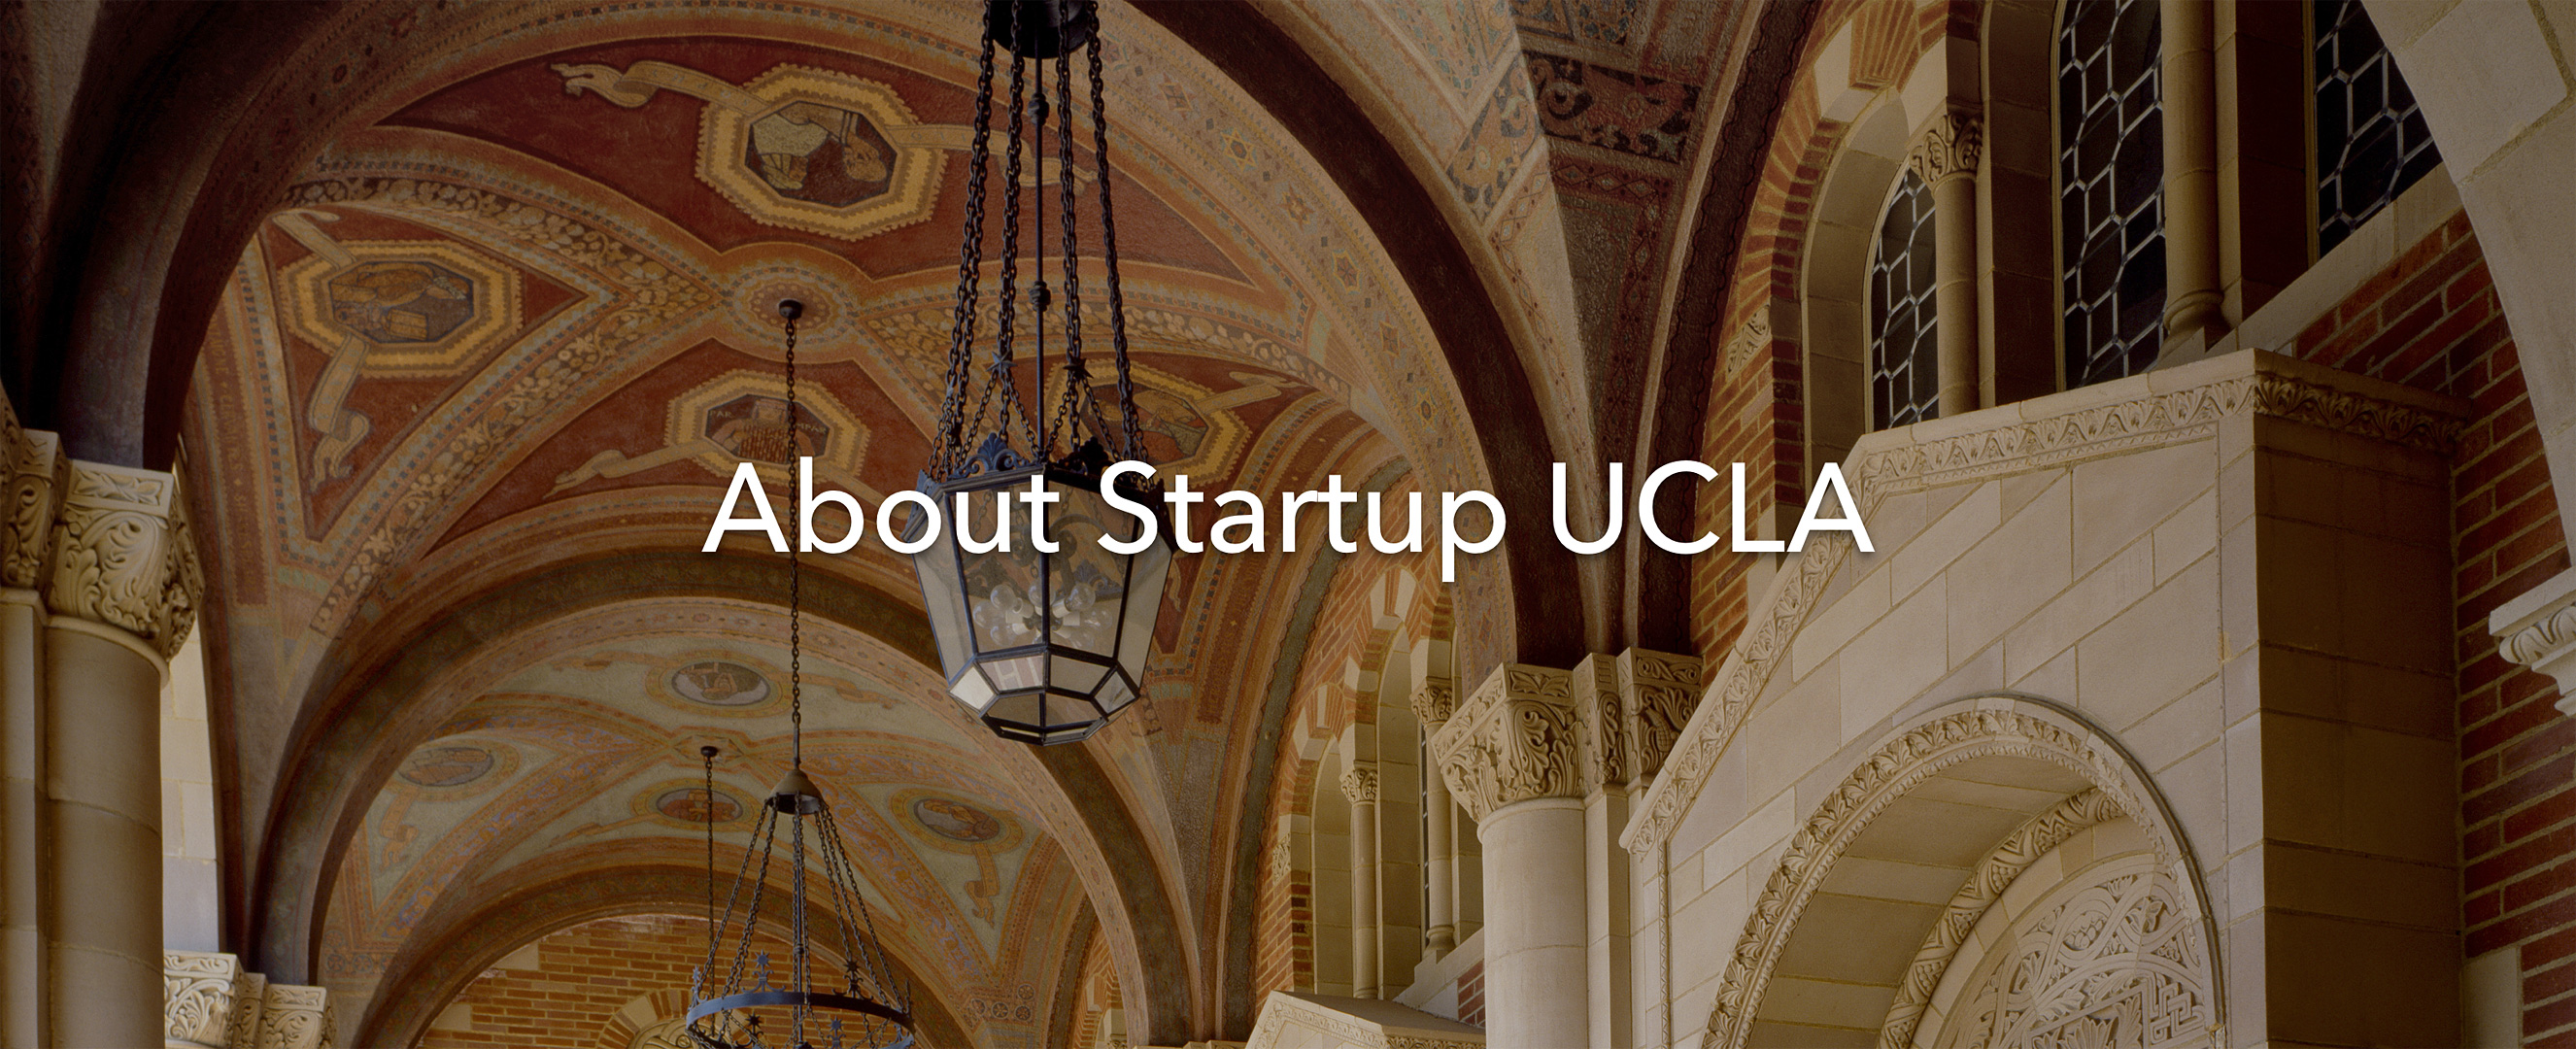 About Startup UCLA